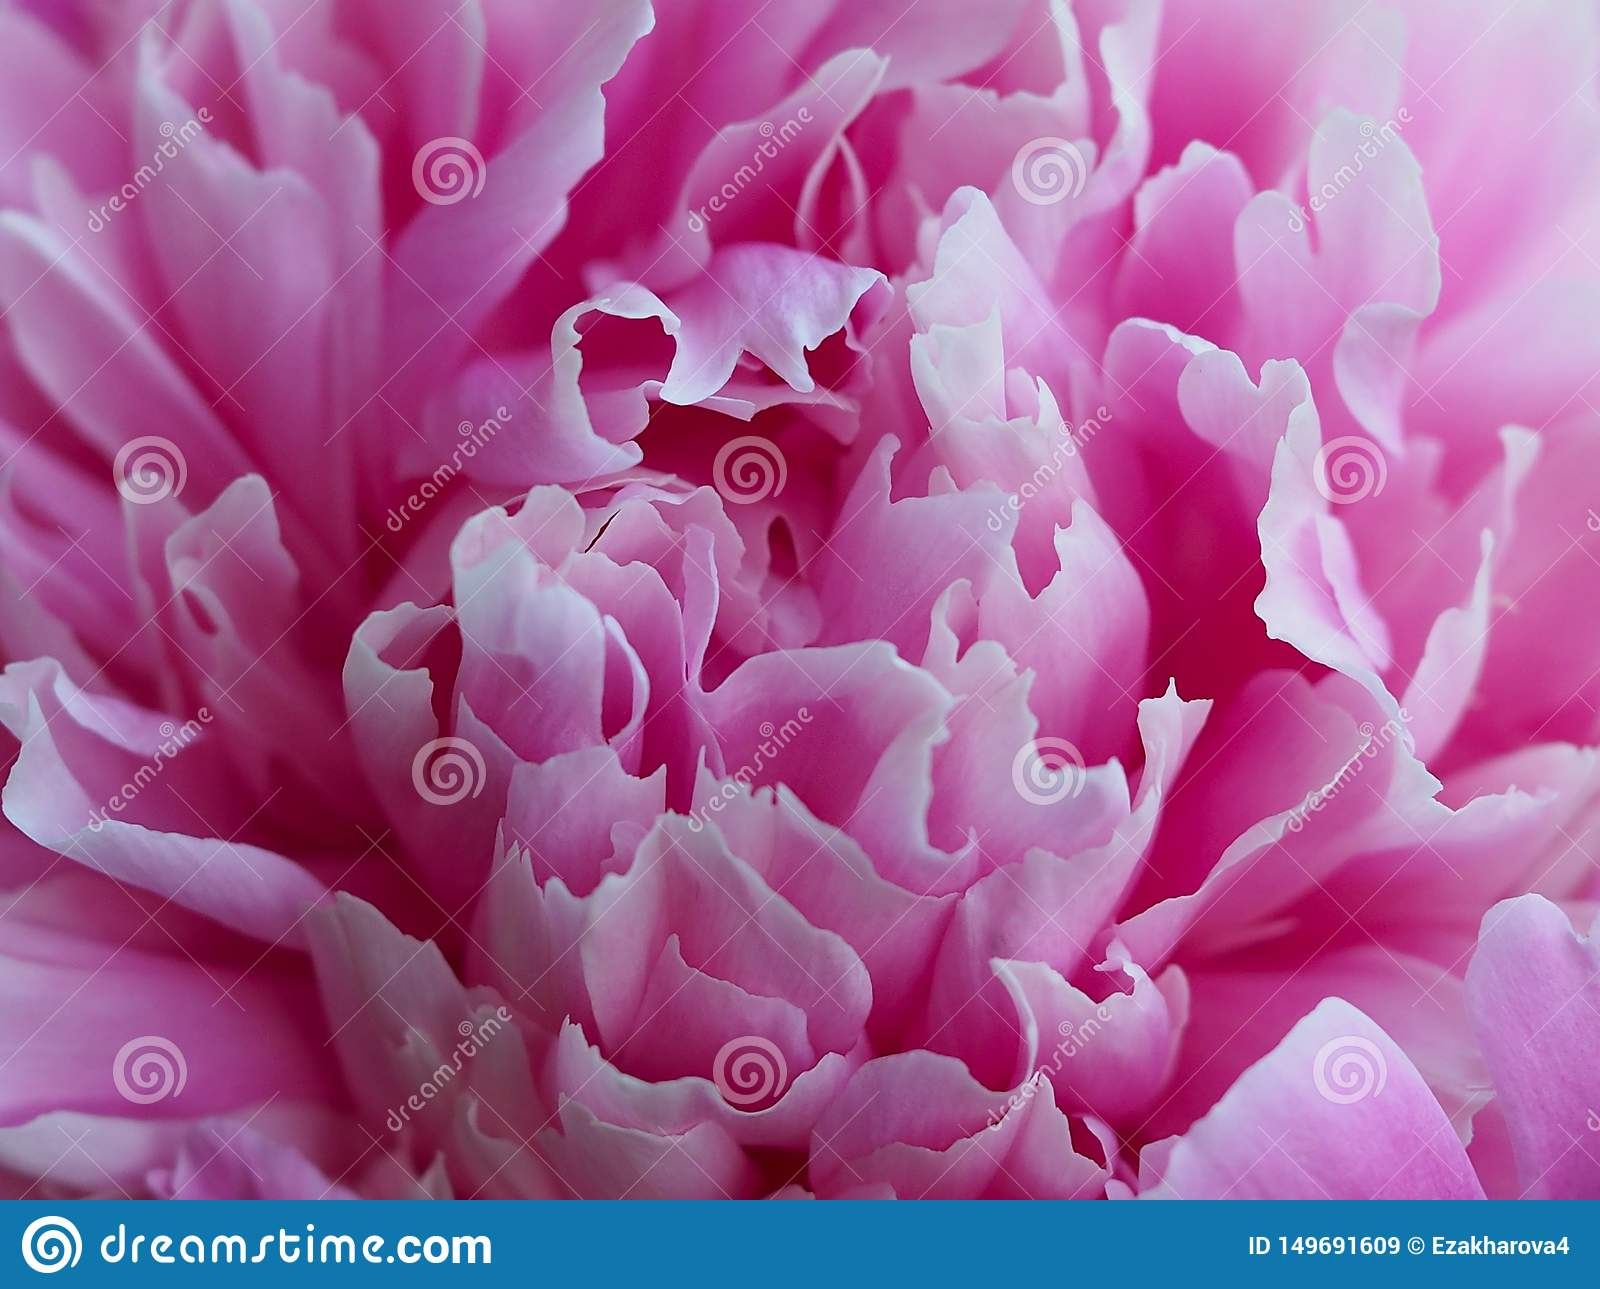 Floral Pink Background With Peony Petals Stock Image Image Of